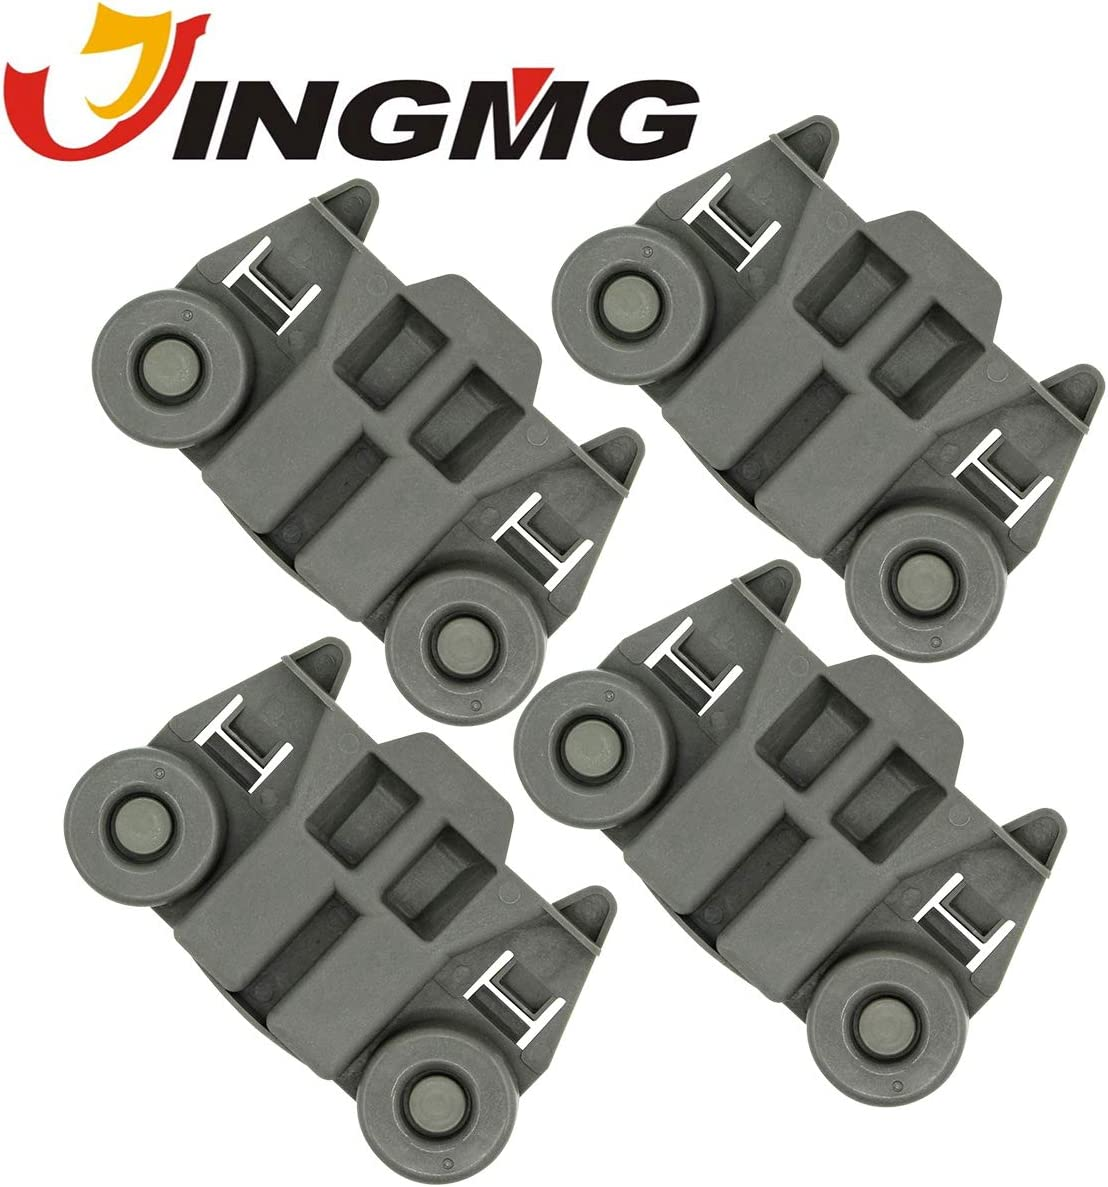 Jingmg W10195417 Dishwasher Rack Roller Wheel Track Replacement Part Fit for Whirlpool & Kenmore Dishwashers - Replaces AP4538395 PS2579553 WPW10195417 (4 Pack)